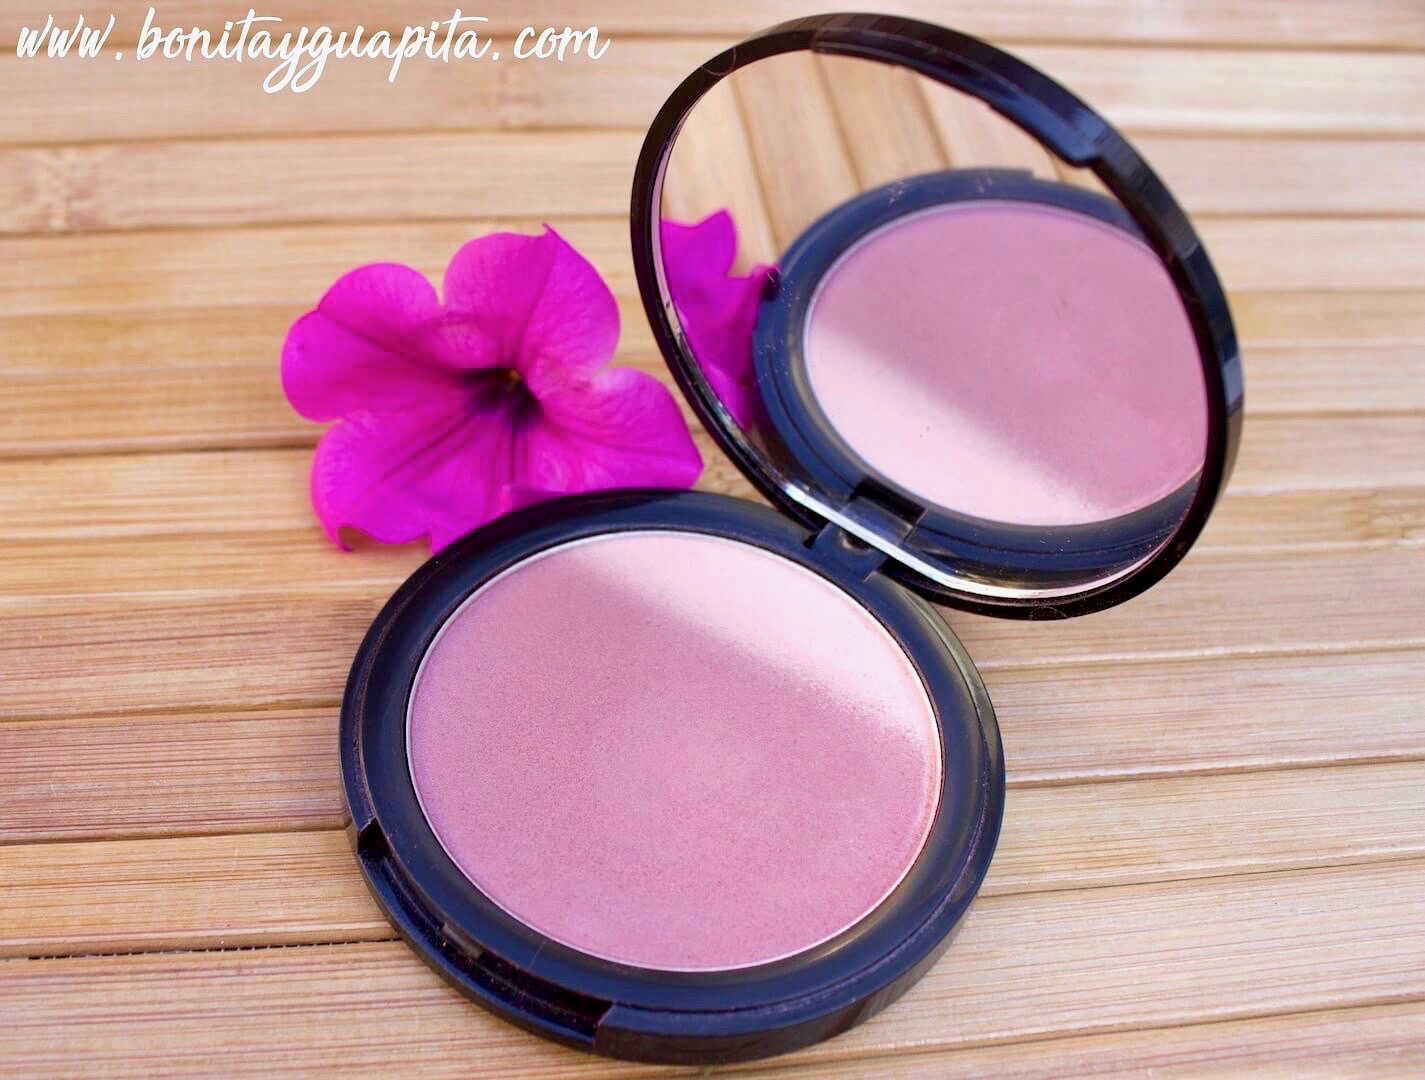 mauve me colorete ombre blush nyx